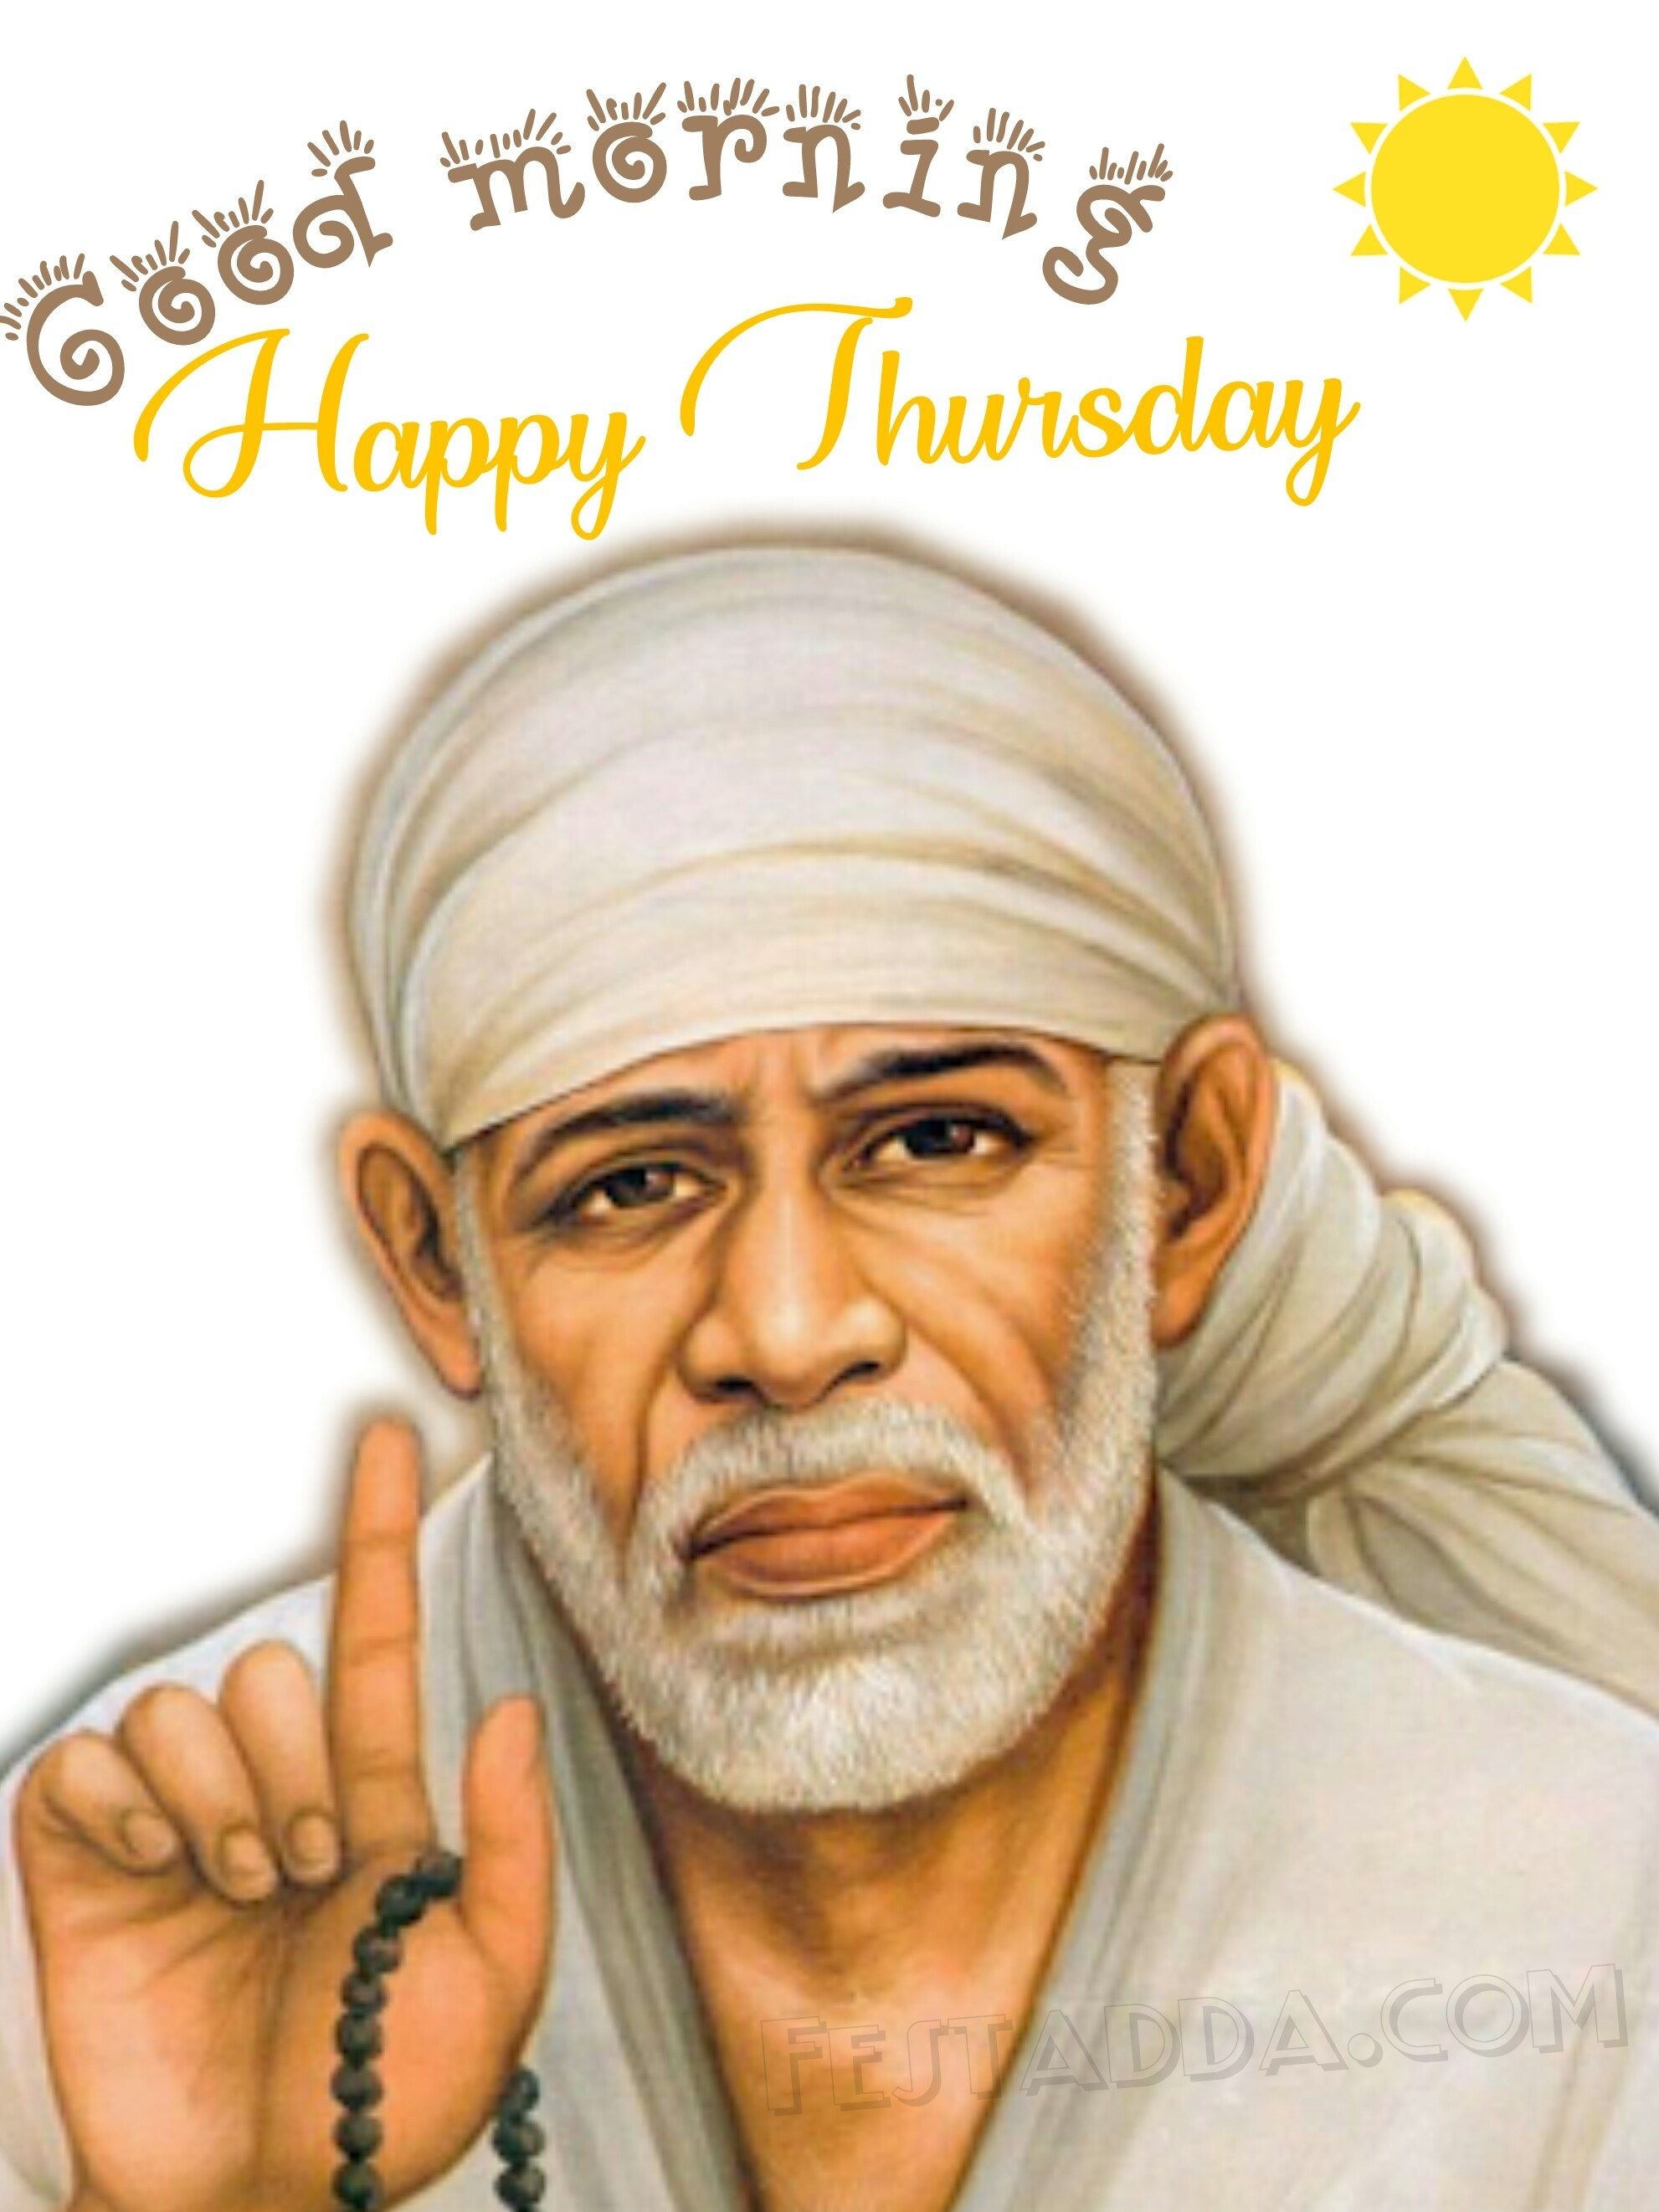 Download Sai Baba Images Hd Happy Thursday Images Good Morning Thursday Images Good Morning Happy Thursday